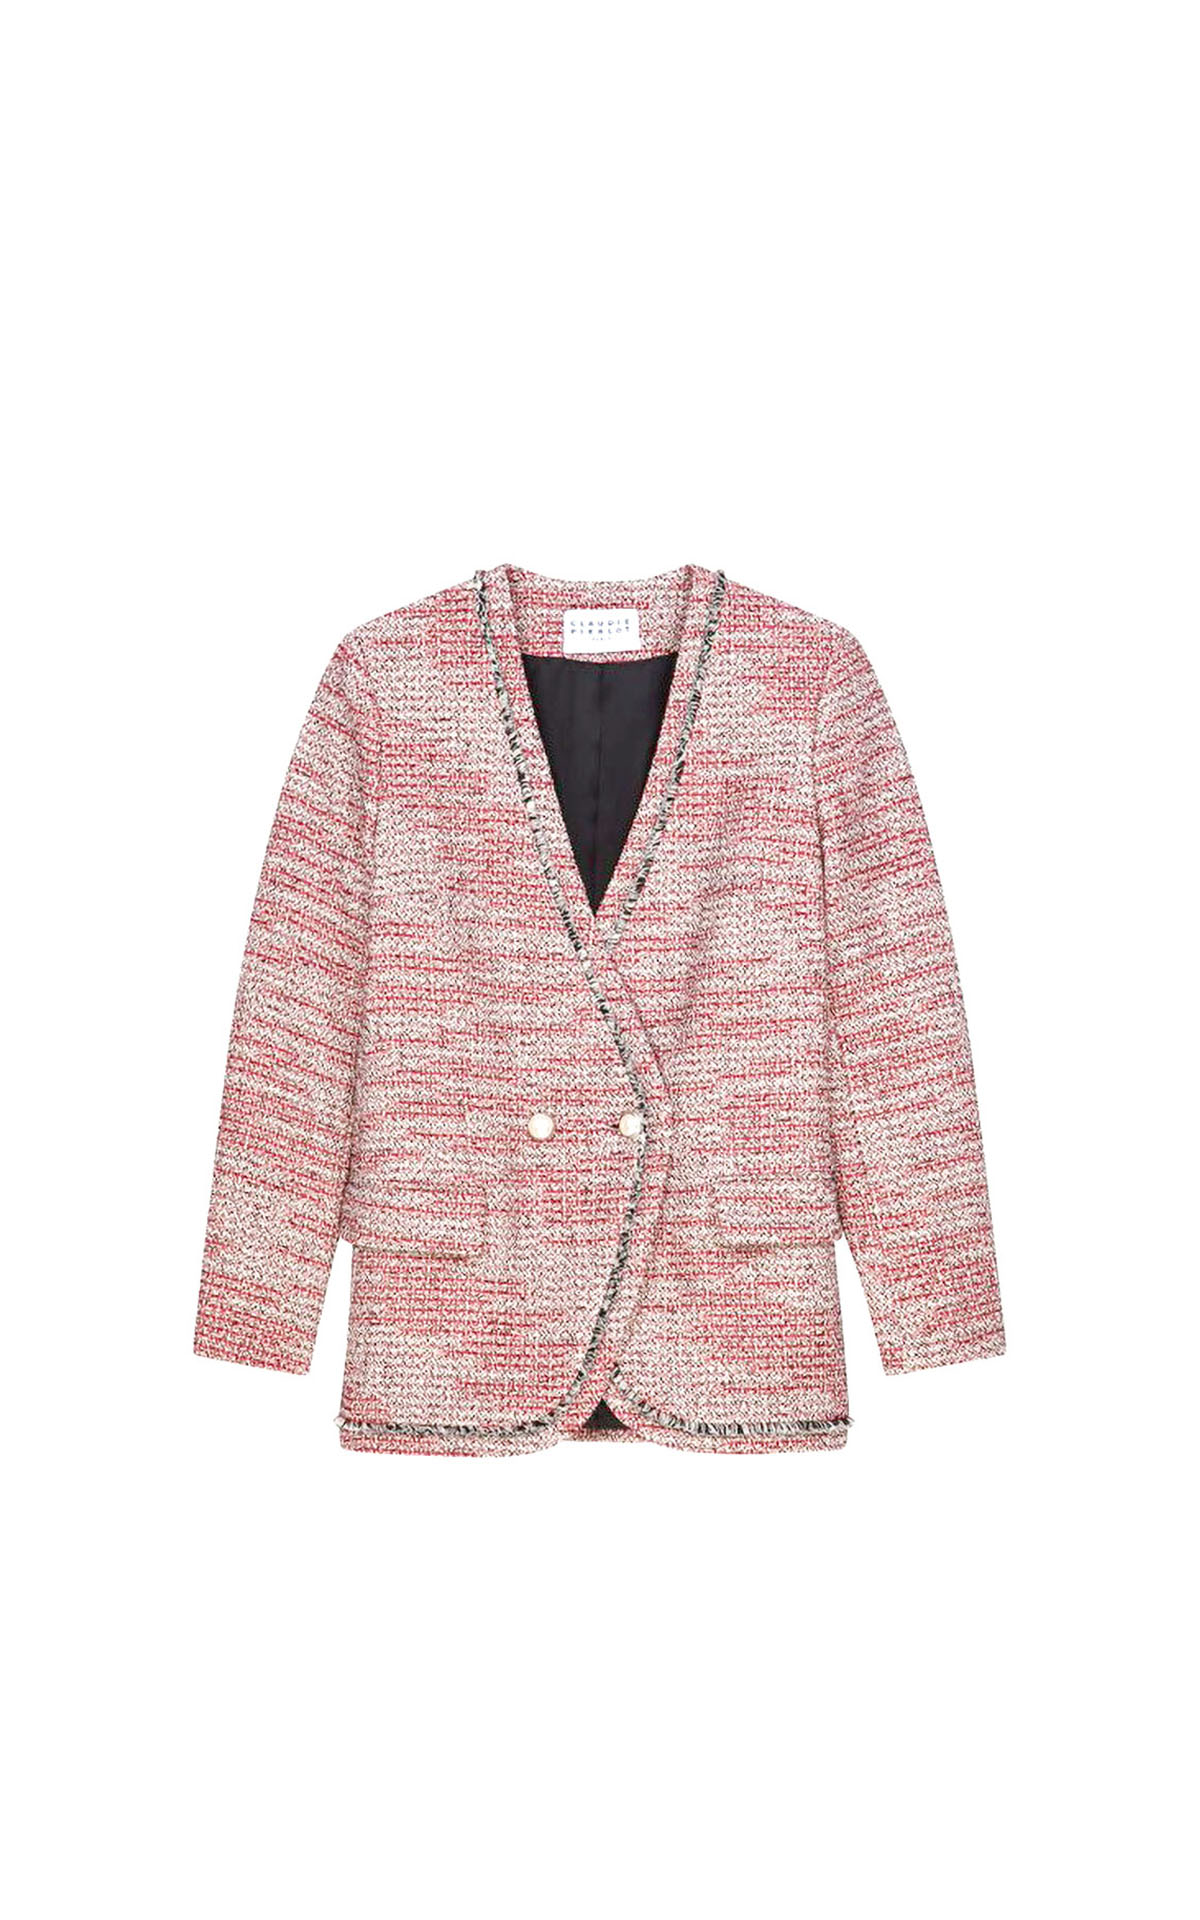 Claudie Pierlot veste at The Bicester Village Shopping Collection